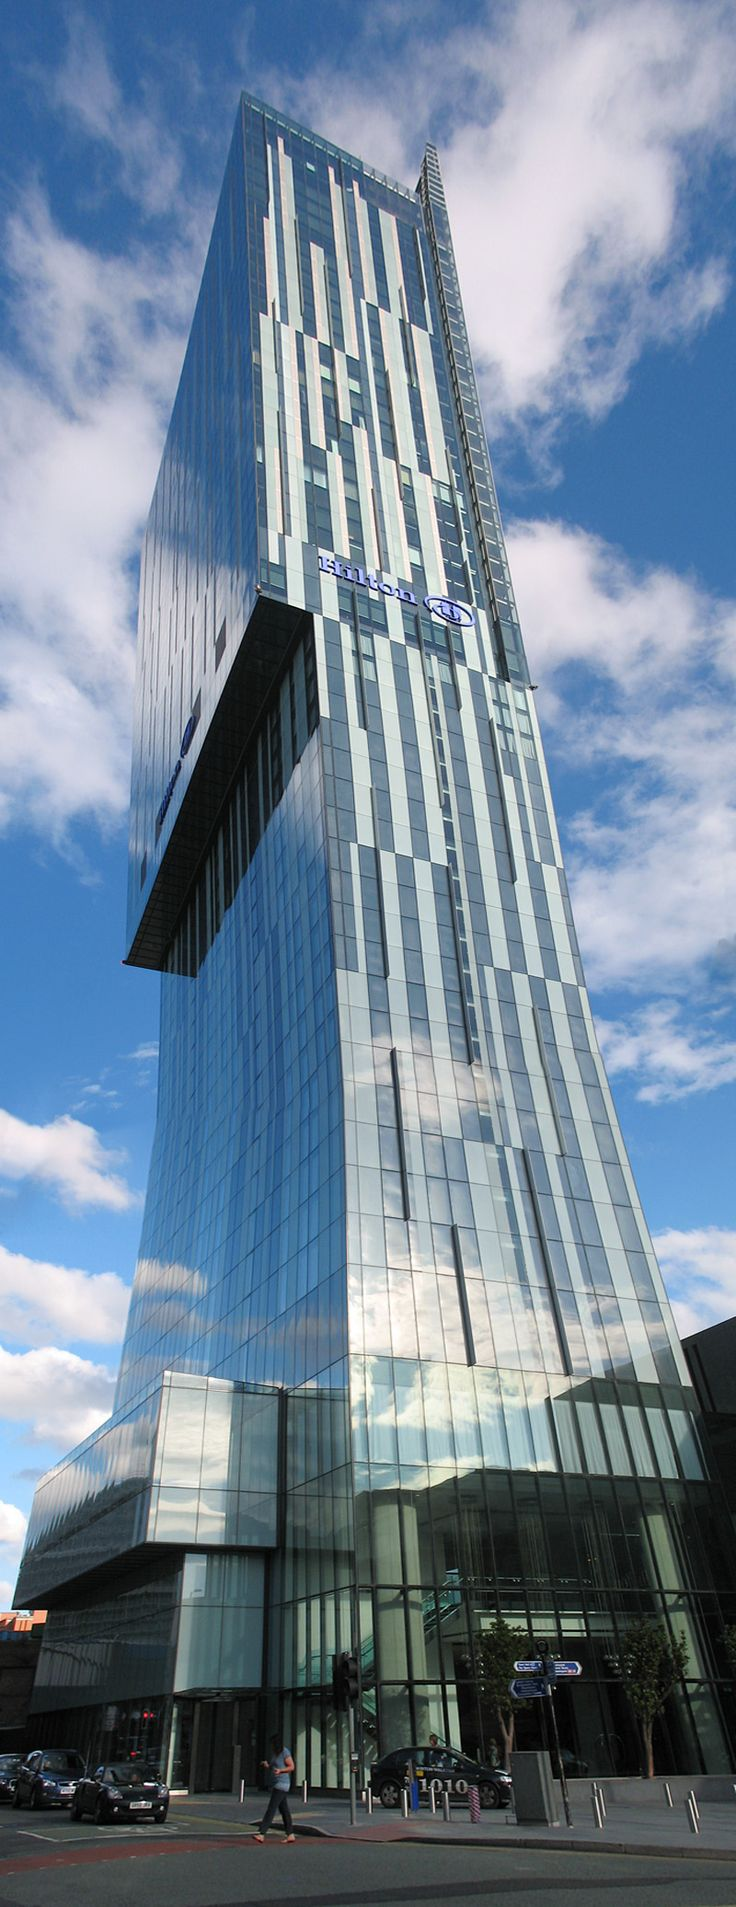 The Beetham Tower (Hilton Hotel) Manchester, England. The tallest building in Manchester at 168m. Great views from the skybar Cloud 23.